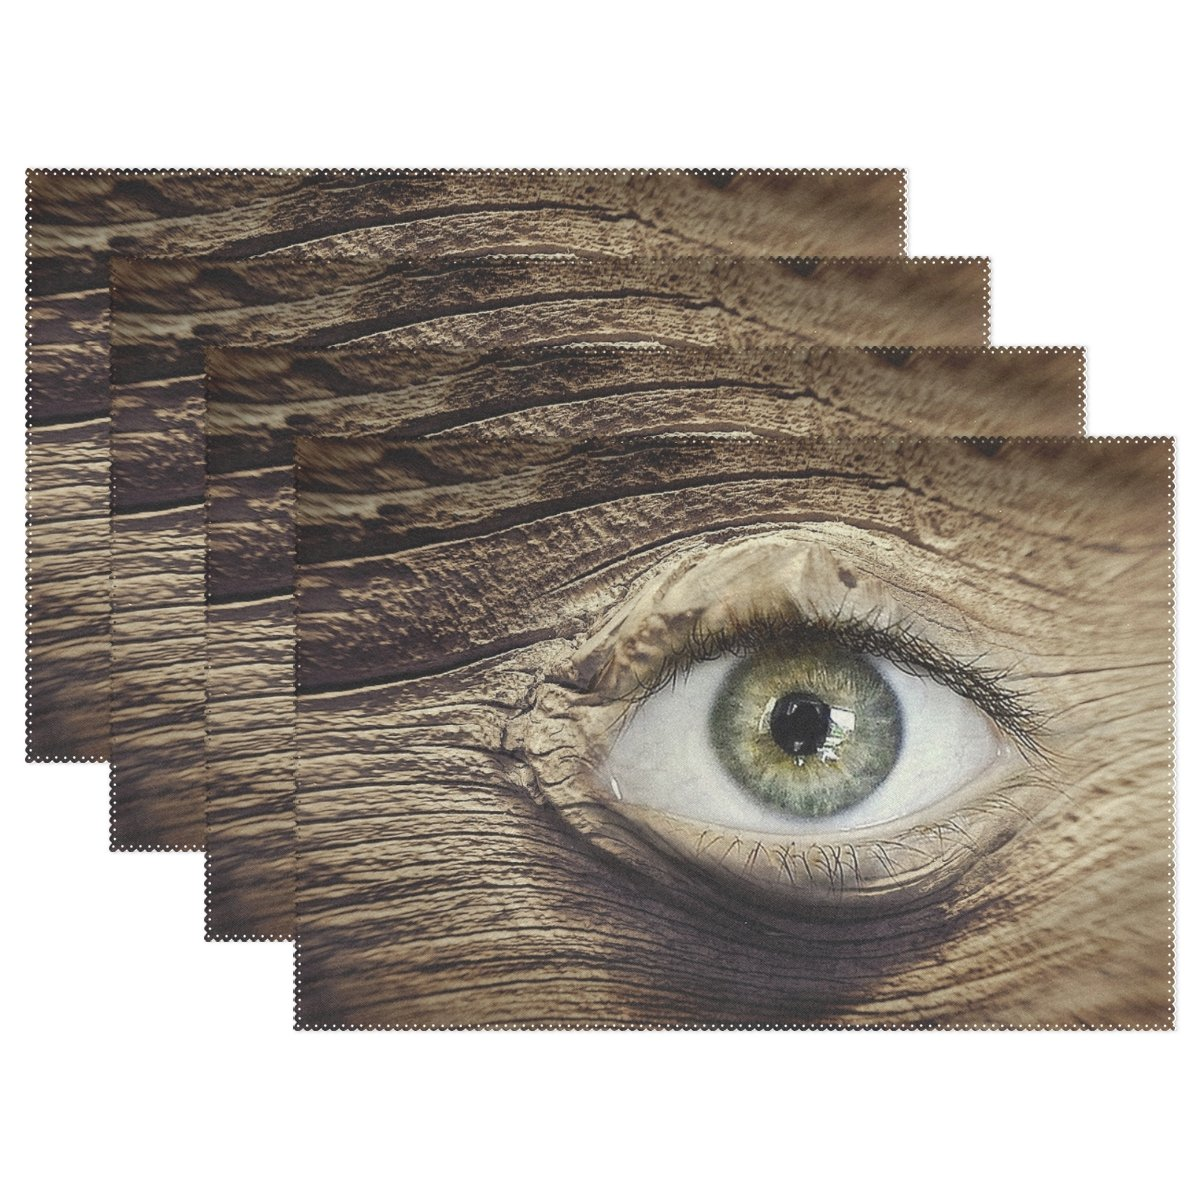 WIEDLKL Eye Wood Knothole Wood Eye Brown Wooden Structure Placemats Set Of 4 Heat Insulation Stain Resistant For Dining Table Durable Non-slip Kitchen Table Place Mats